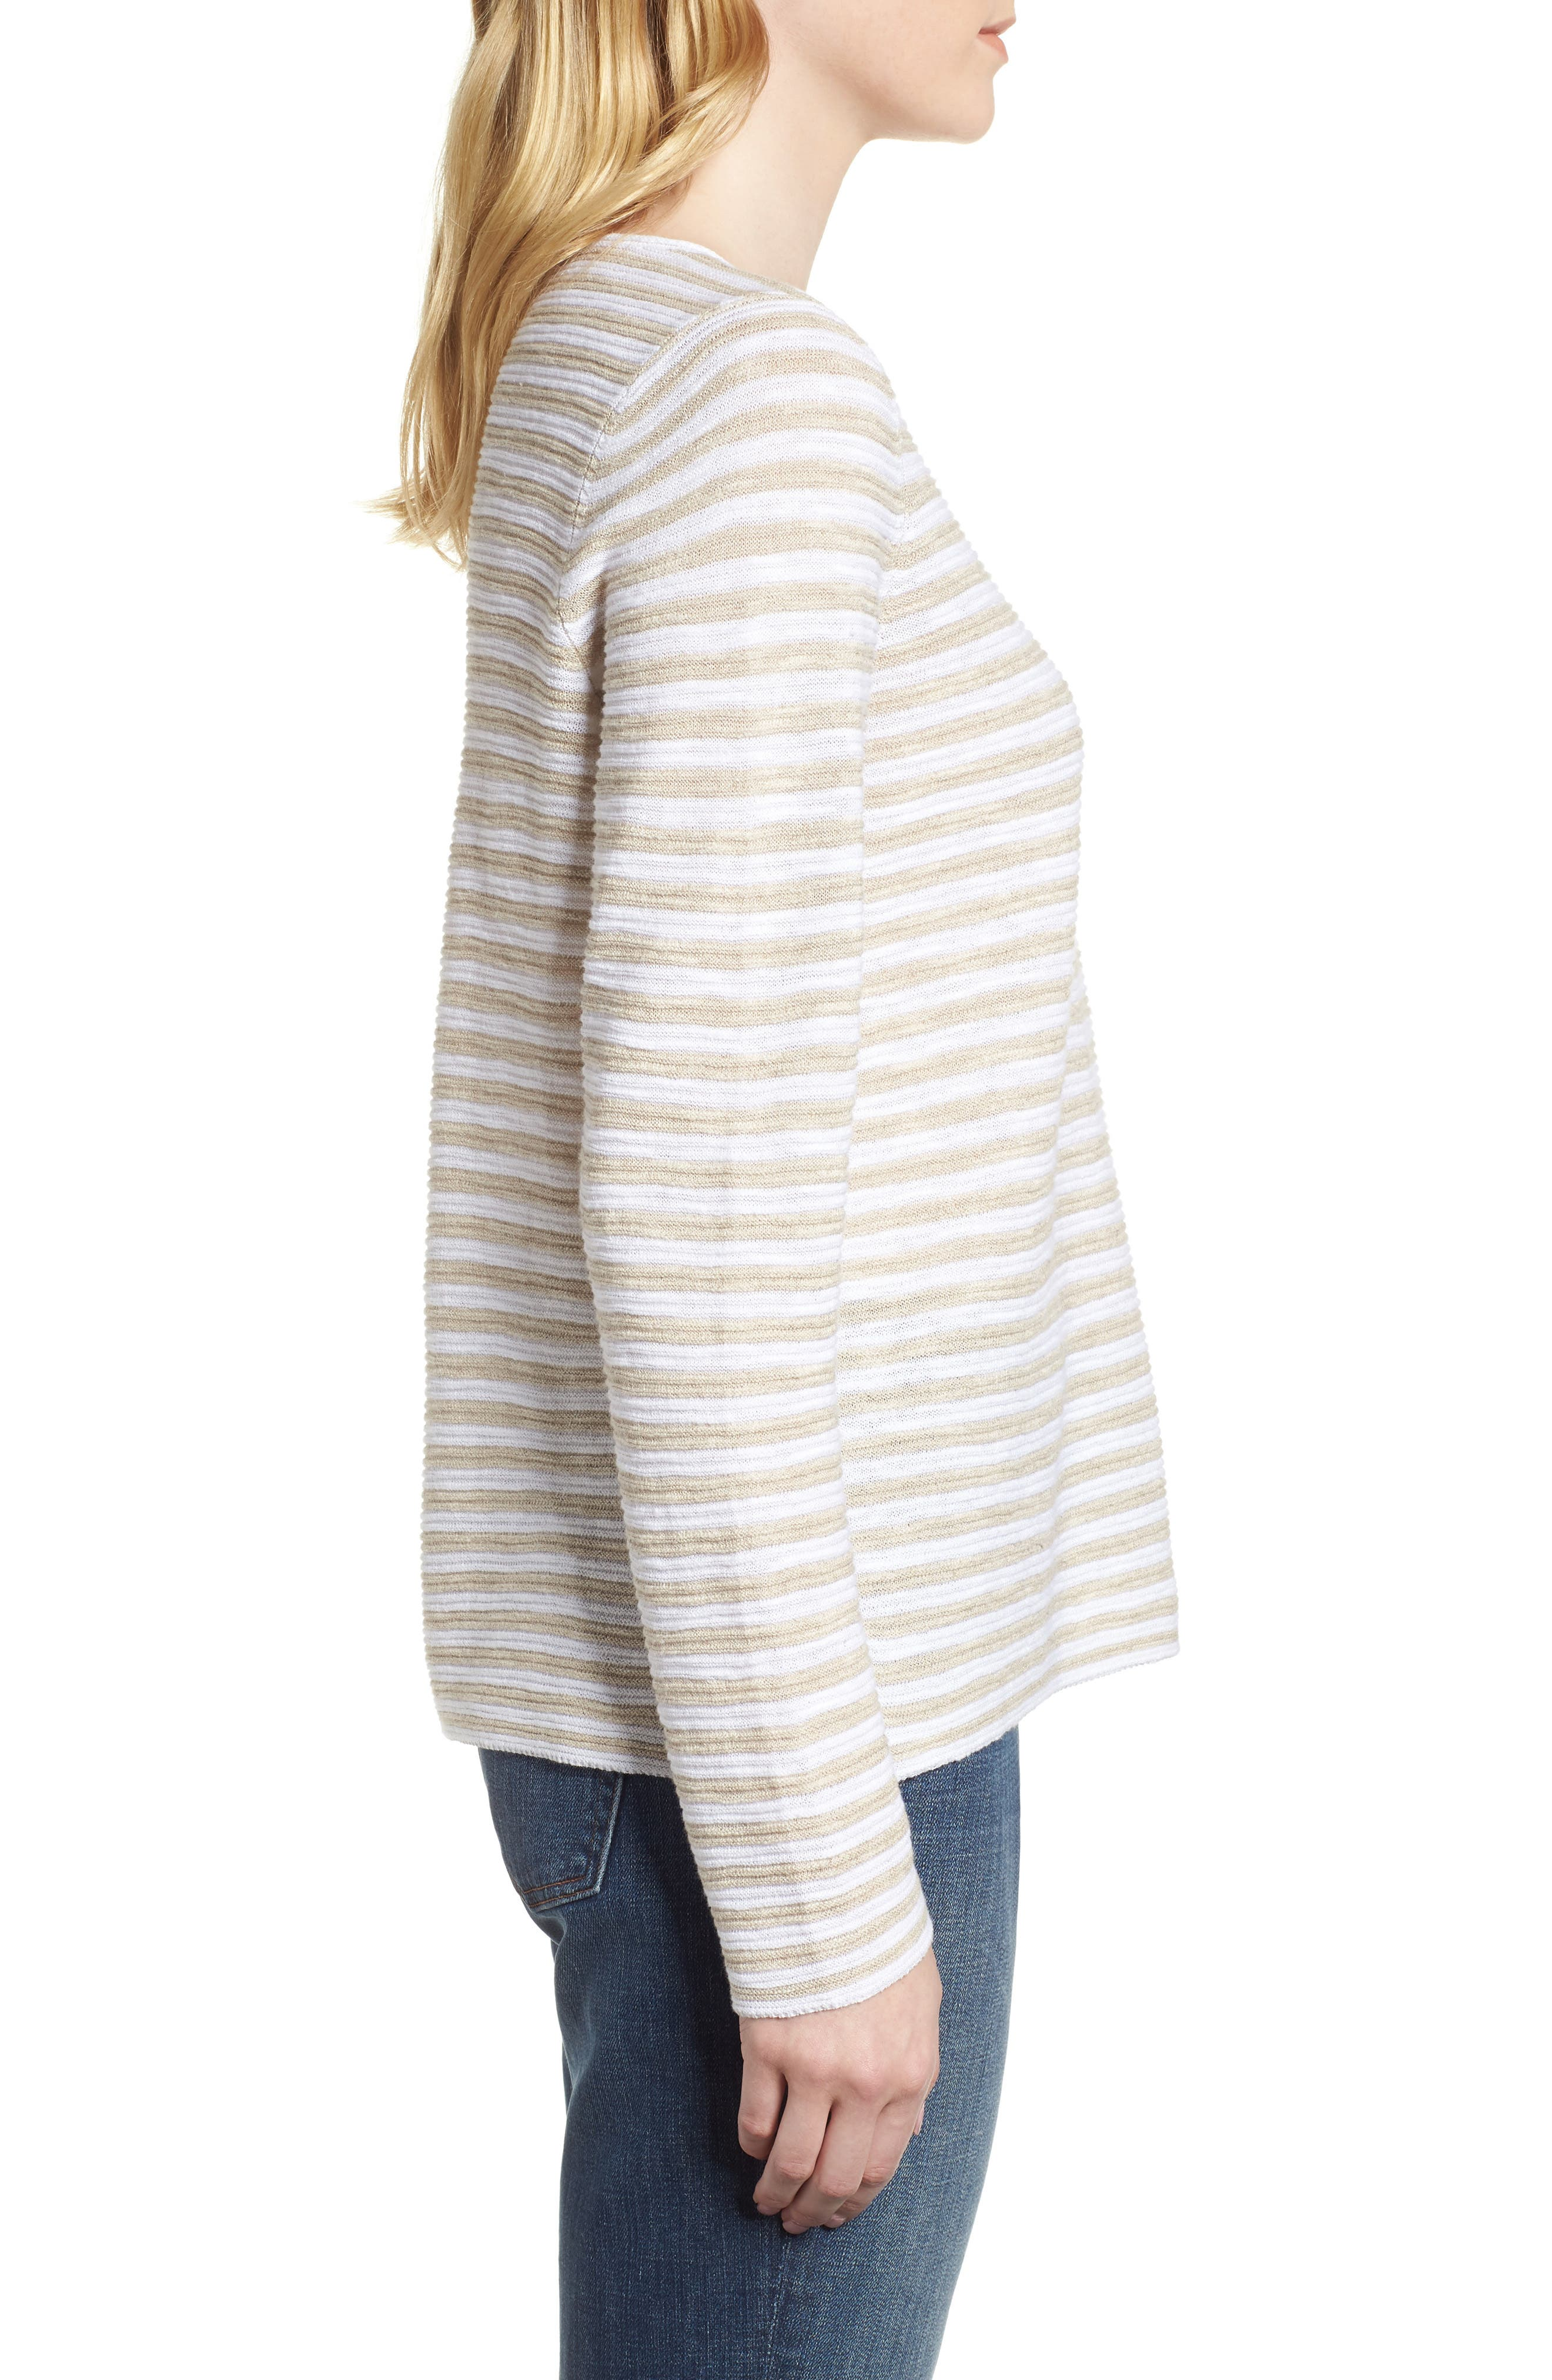 Stripe Organic Linen & Cotton Sweater,                             Alternate thumbnail 3, color,                             White/ Natural